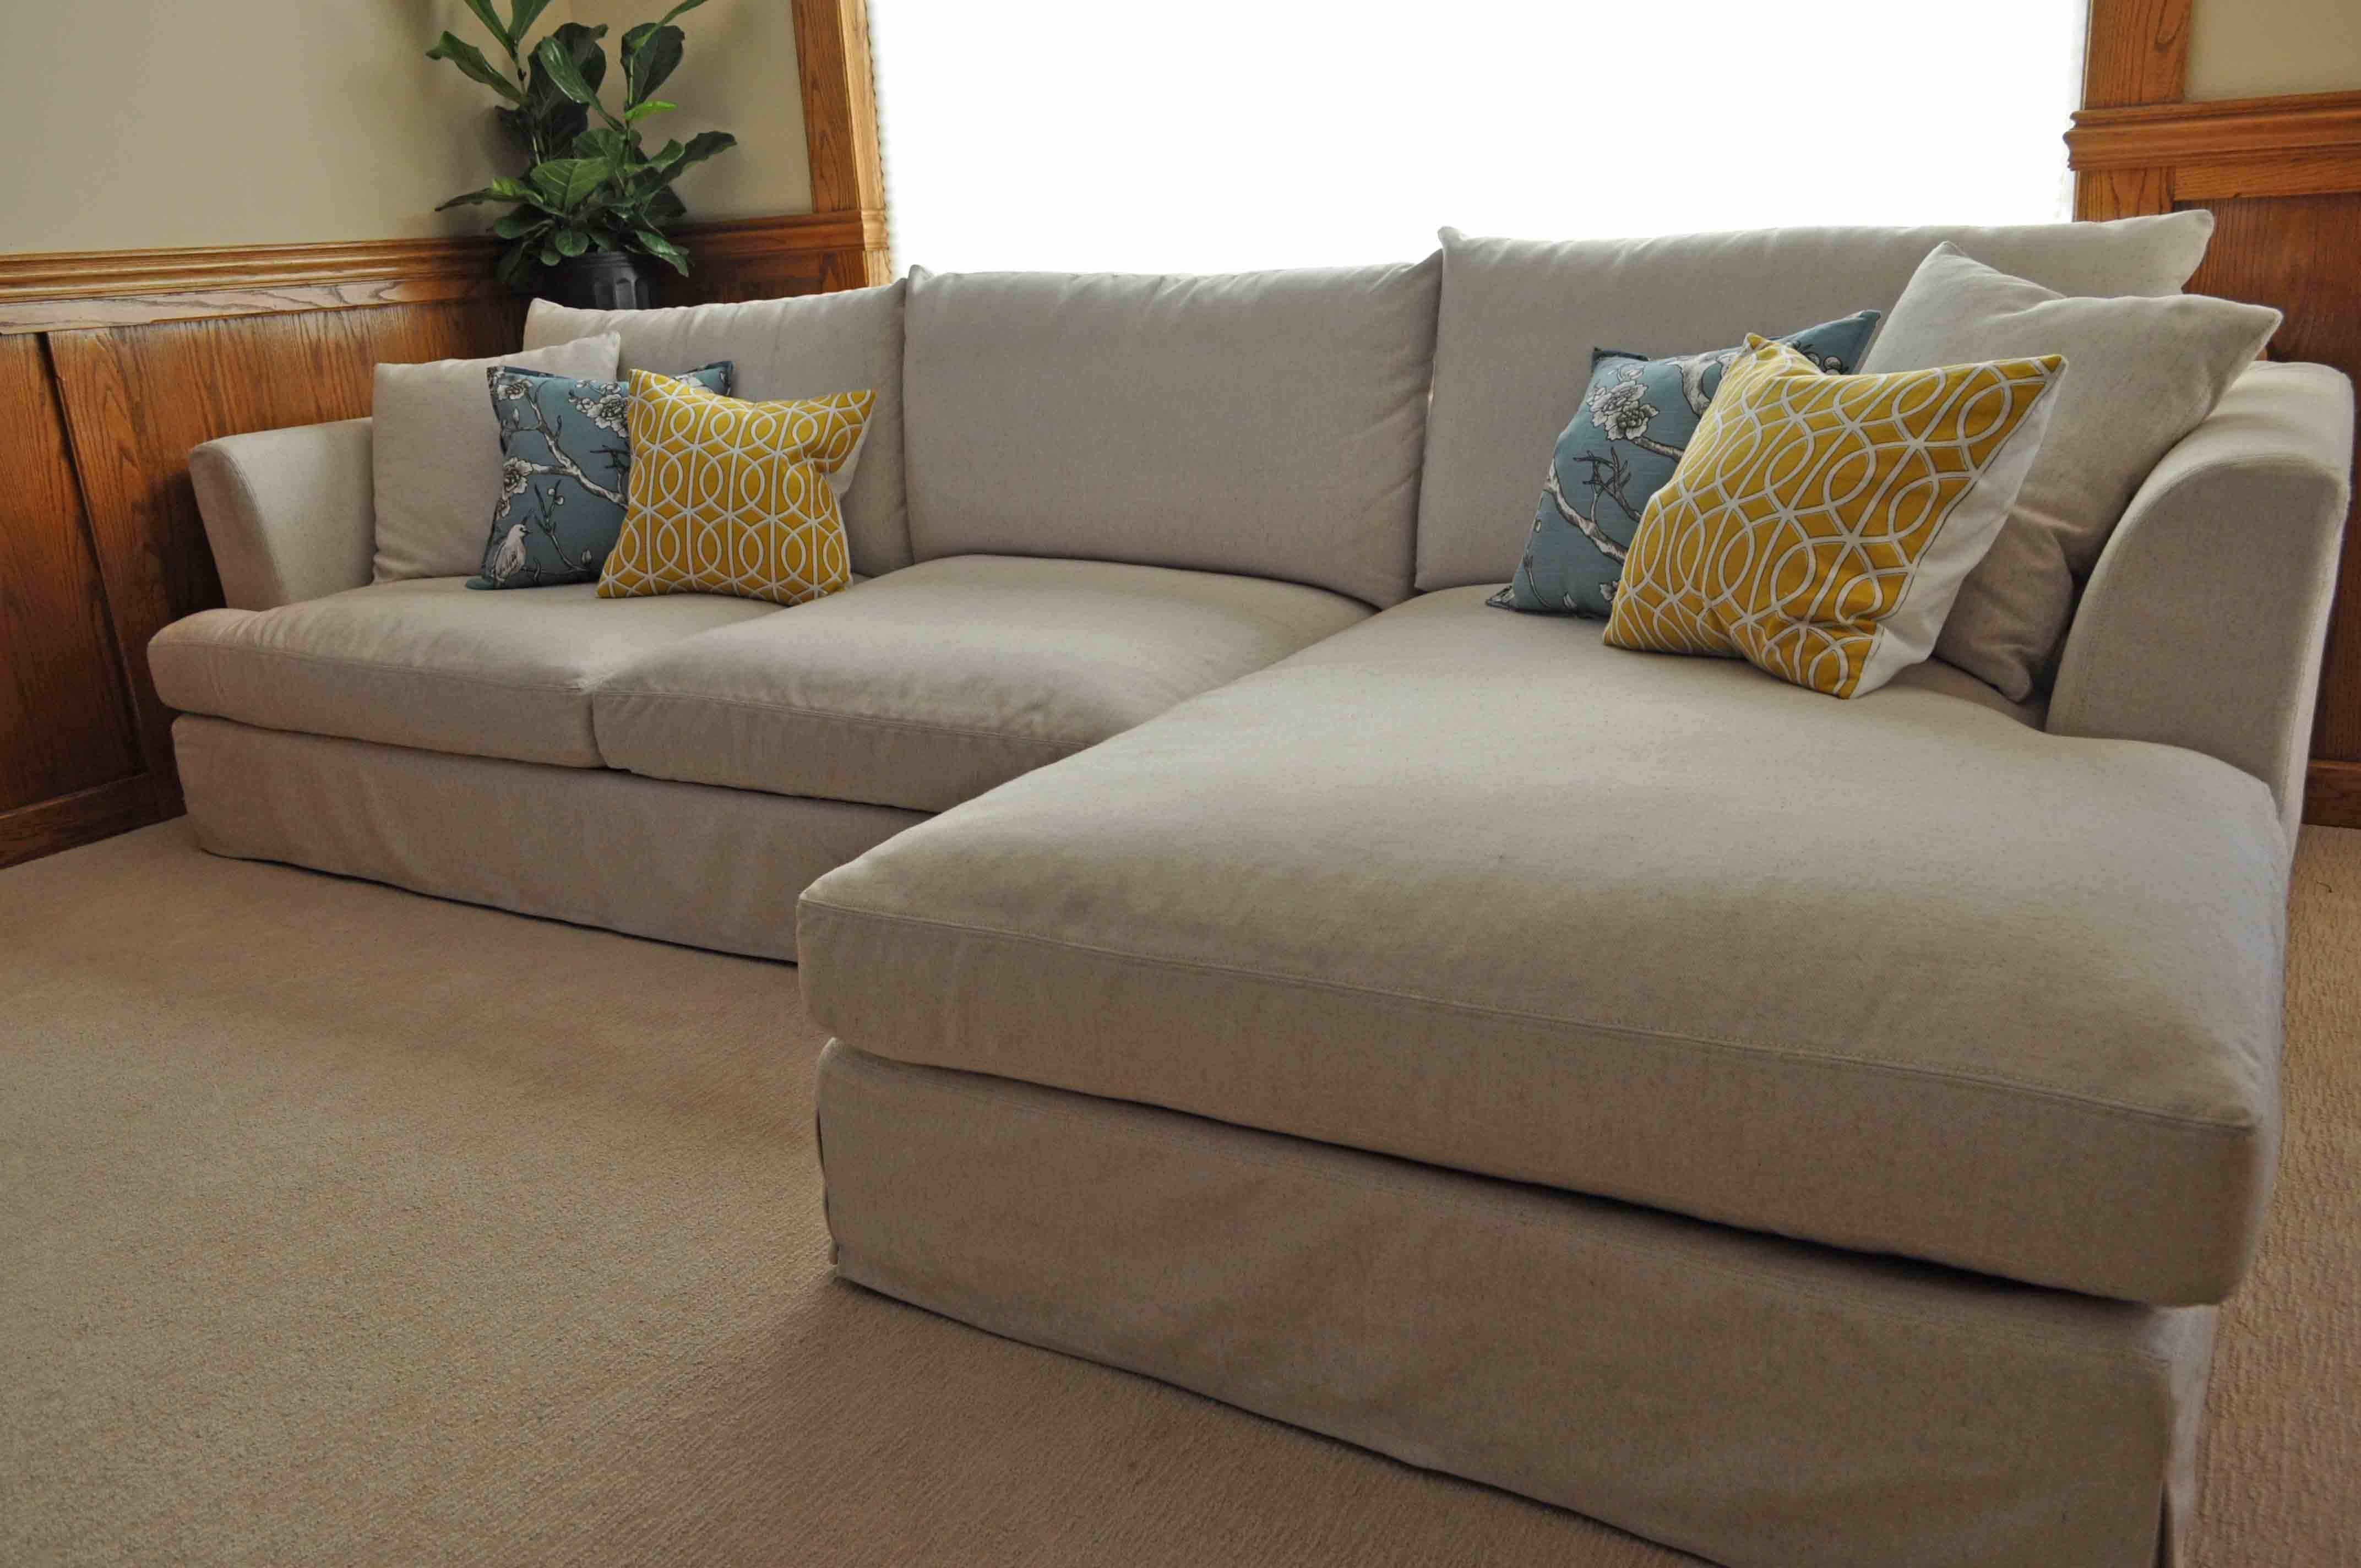 Big Sofa In A Small Room Large Comfortable Sofa Sectional Sofas Large Comfortable